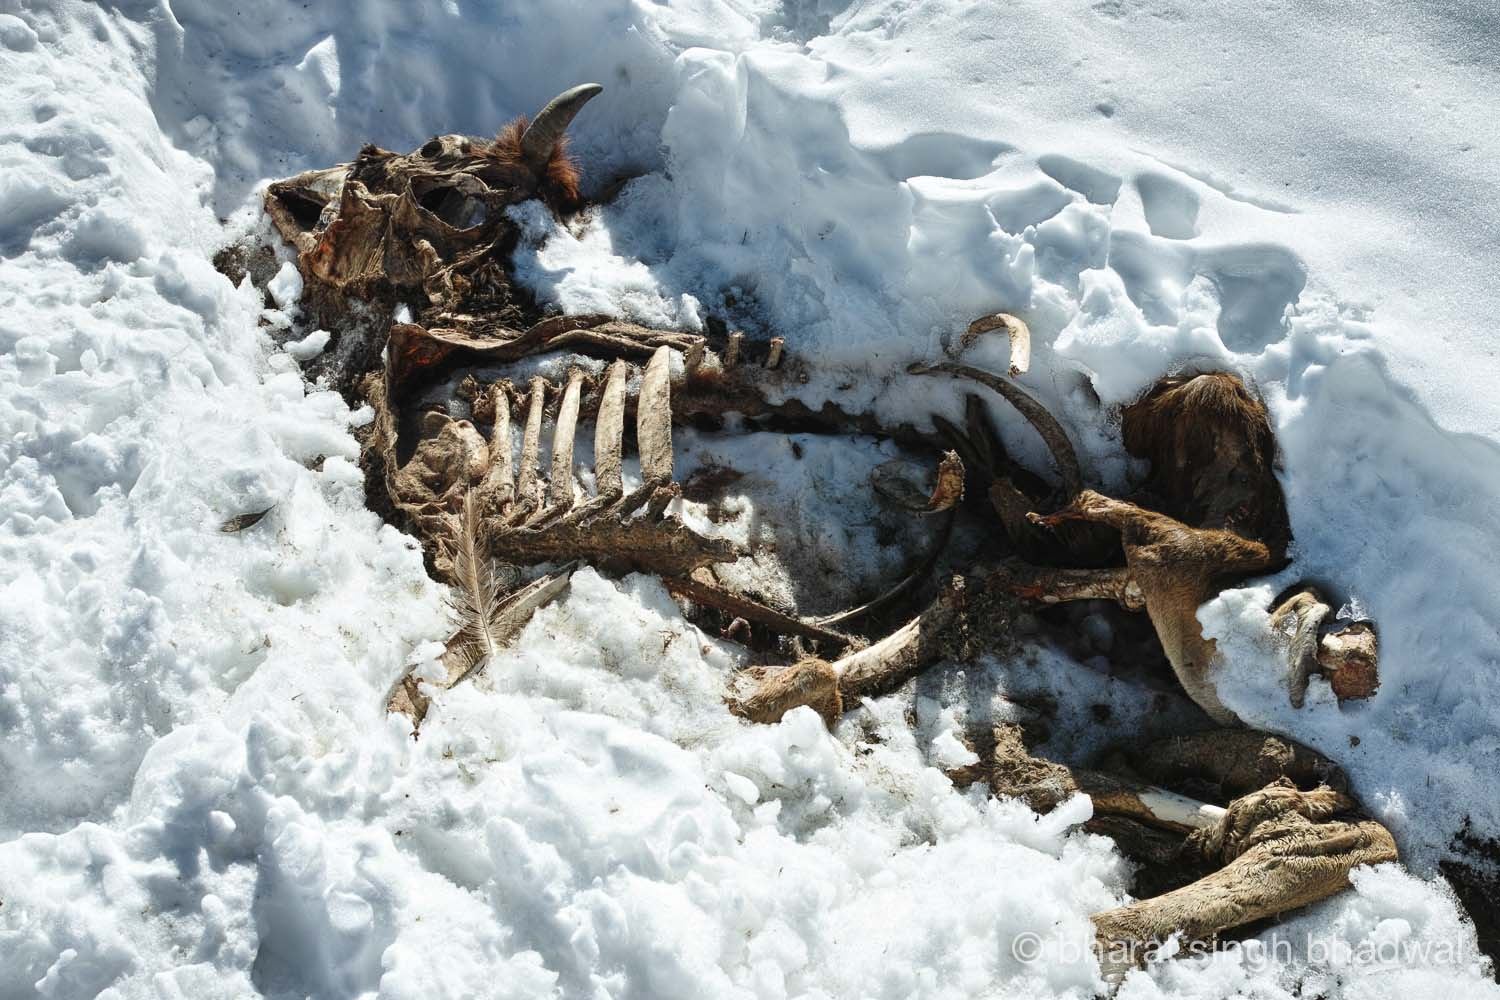 A grim reminder of things going wrong on a winter trek